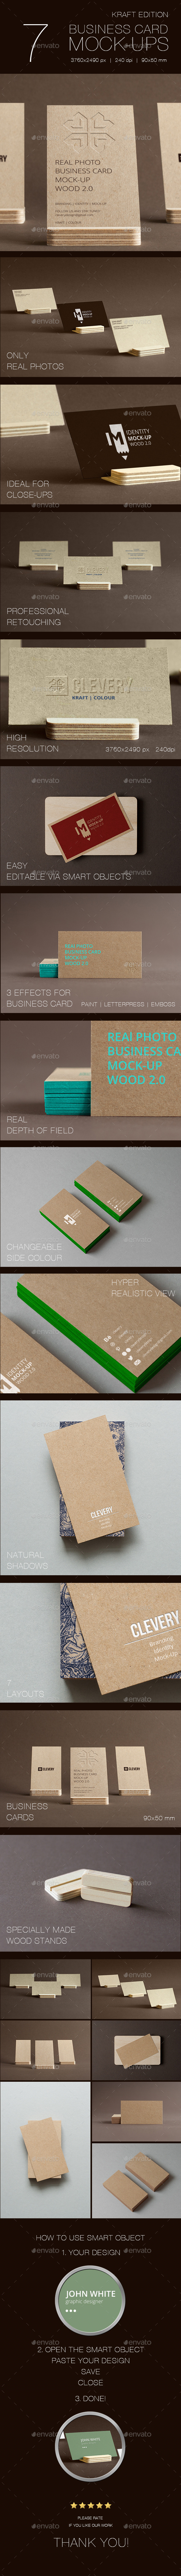 GraphicRiver Branding Identity Business Card Mock-Up 10492486